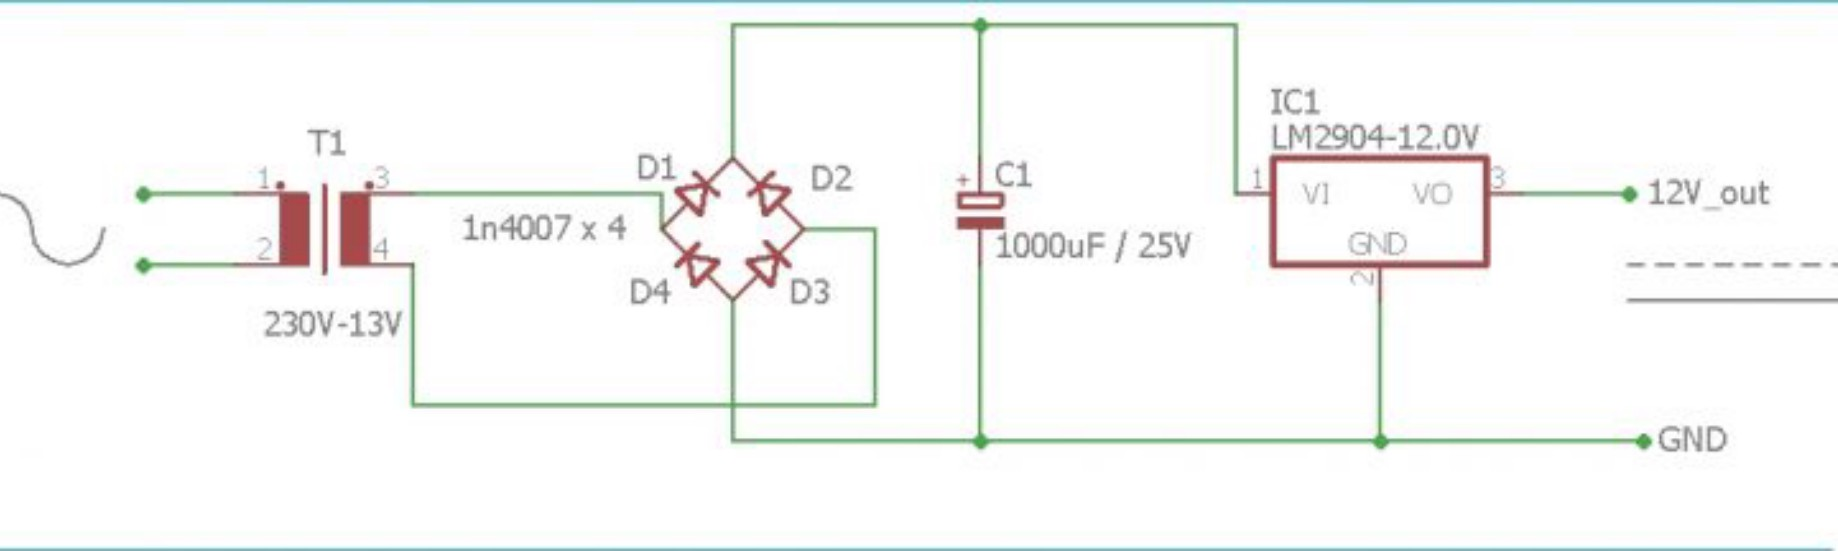 AC TO DC CONVERTER CIRCUIT | 220V TO 12V DC CONVERTER CIRCUIT DIAGRAM | by  Yashwanth Krishna | MediumMedium